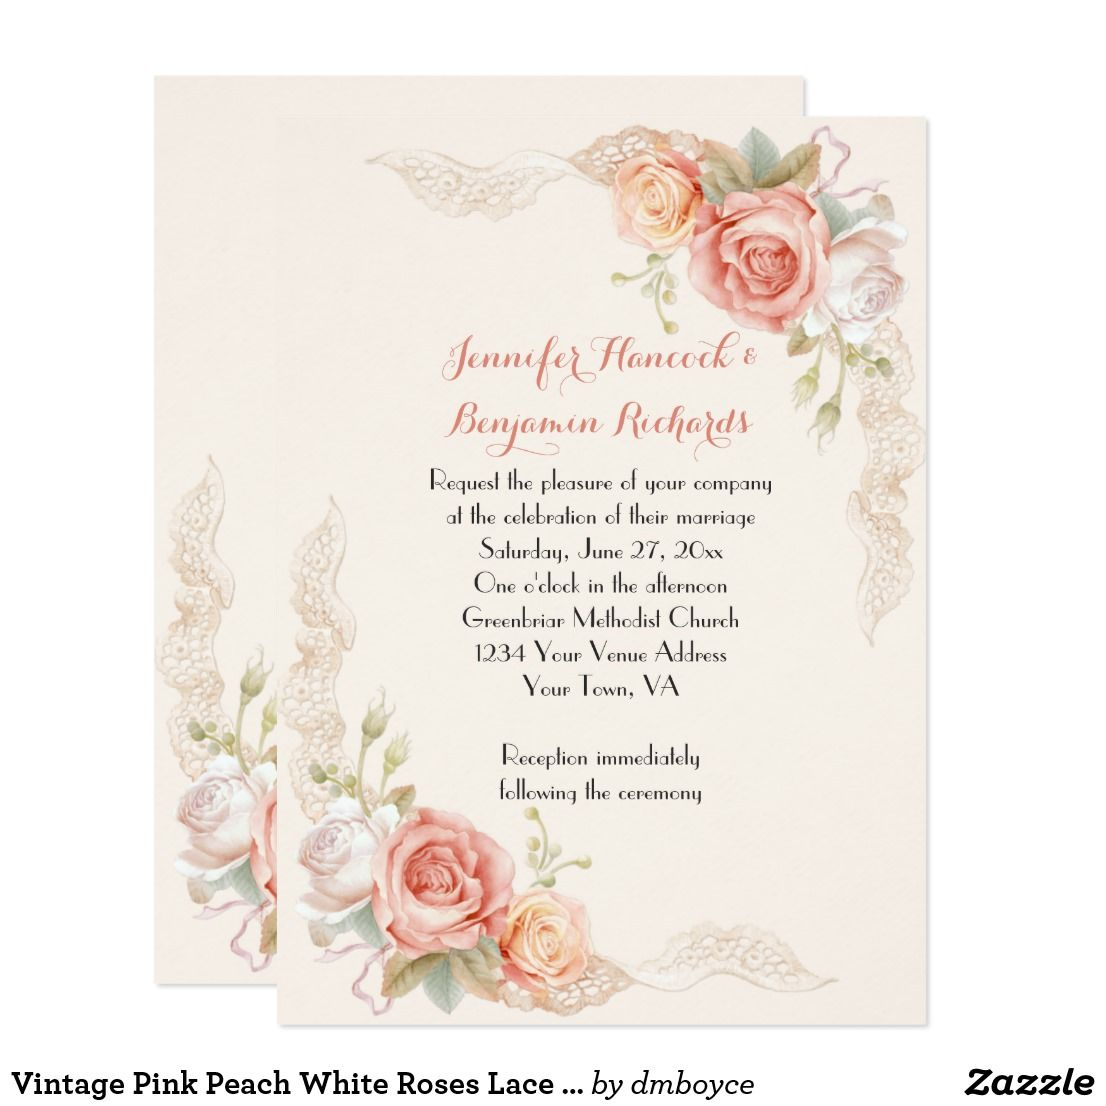 Vintage Pink Peach White Roses Lace Wedding Invite | White roses ...